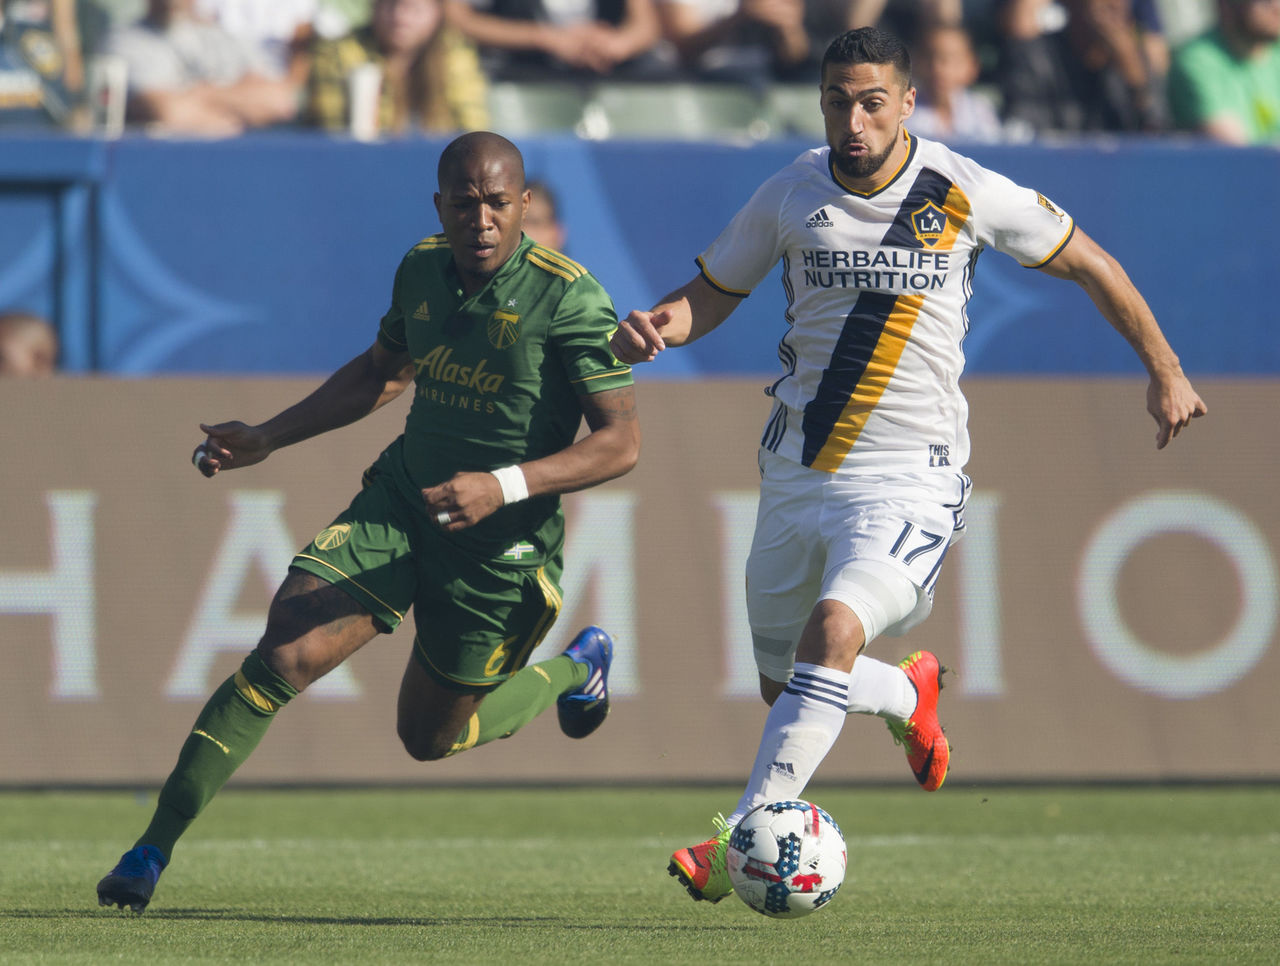 Cropped 2017 03 13t021346z 1128260464 nocid rtrmadp 3 mls portland timbers at los angeles galaxy